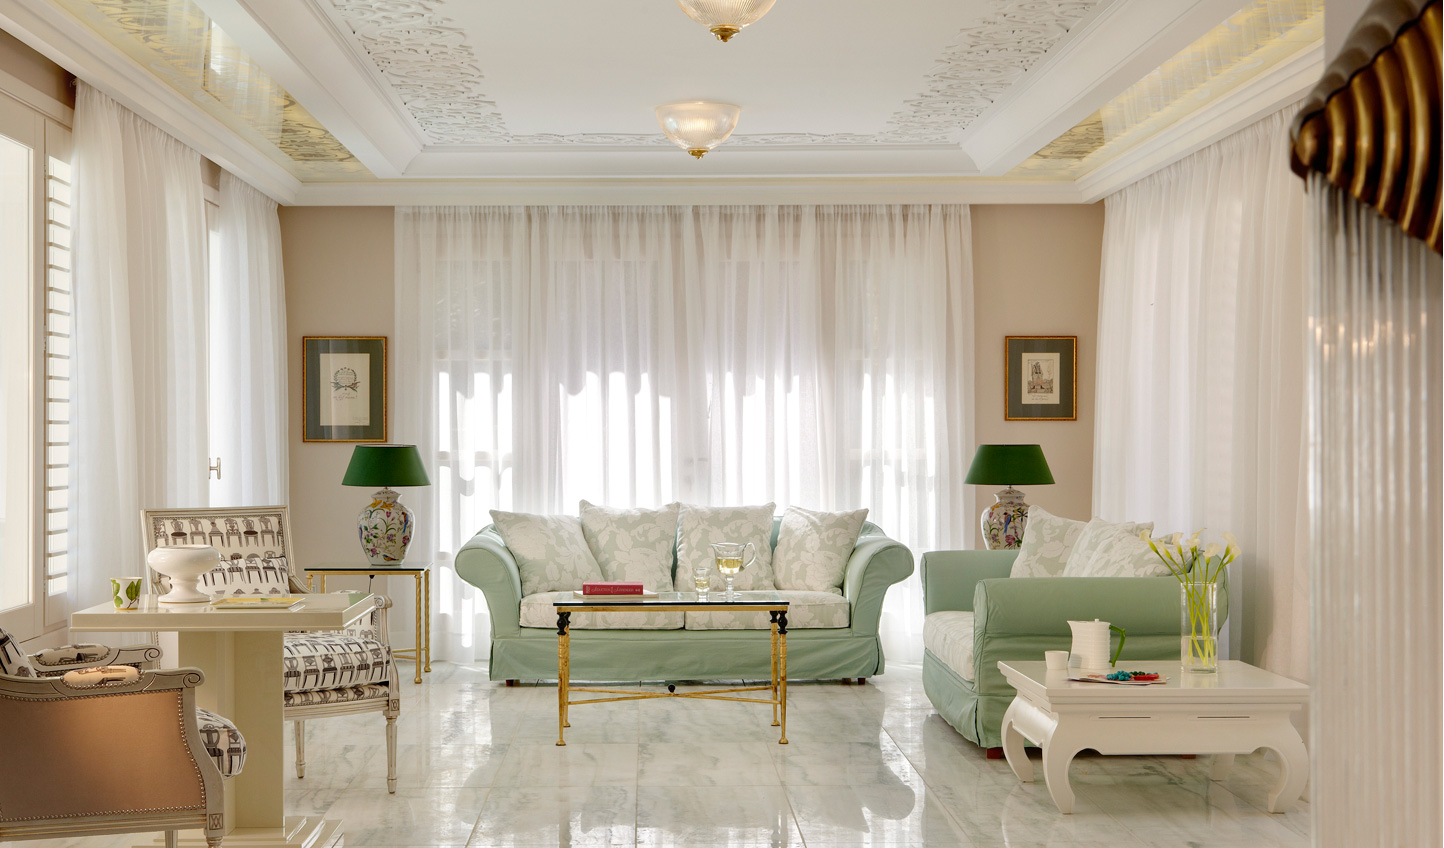 Relax in your stylish suite